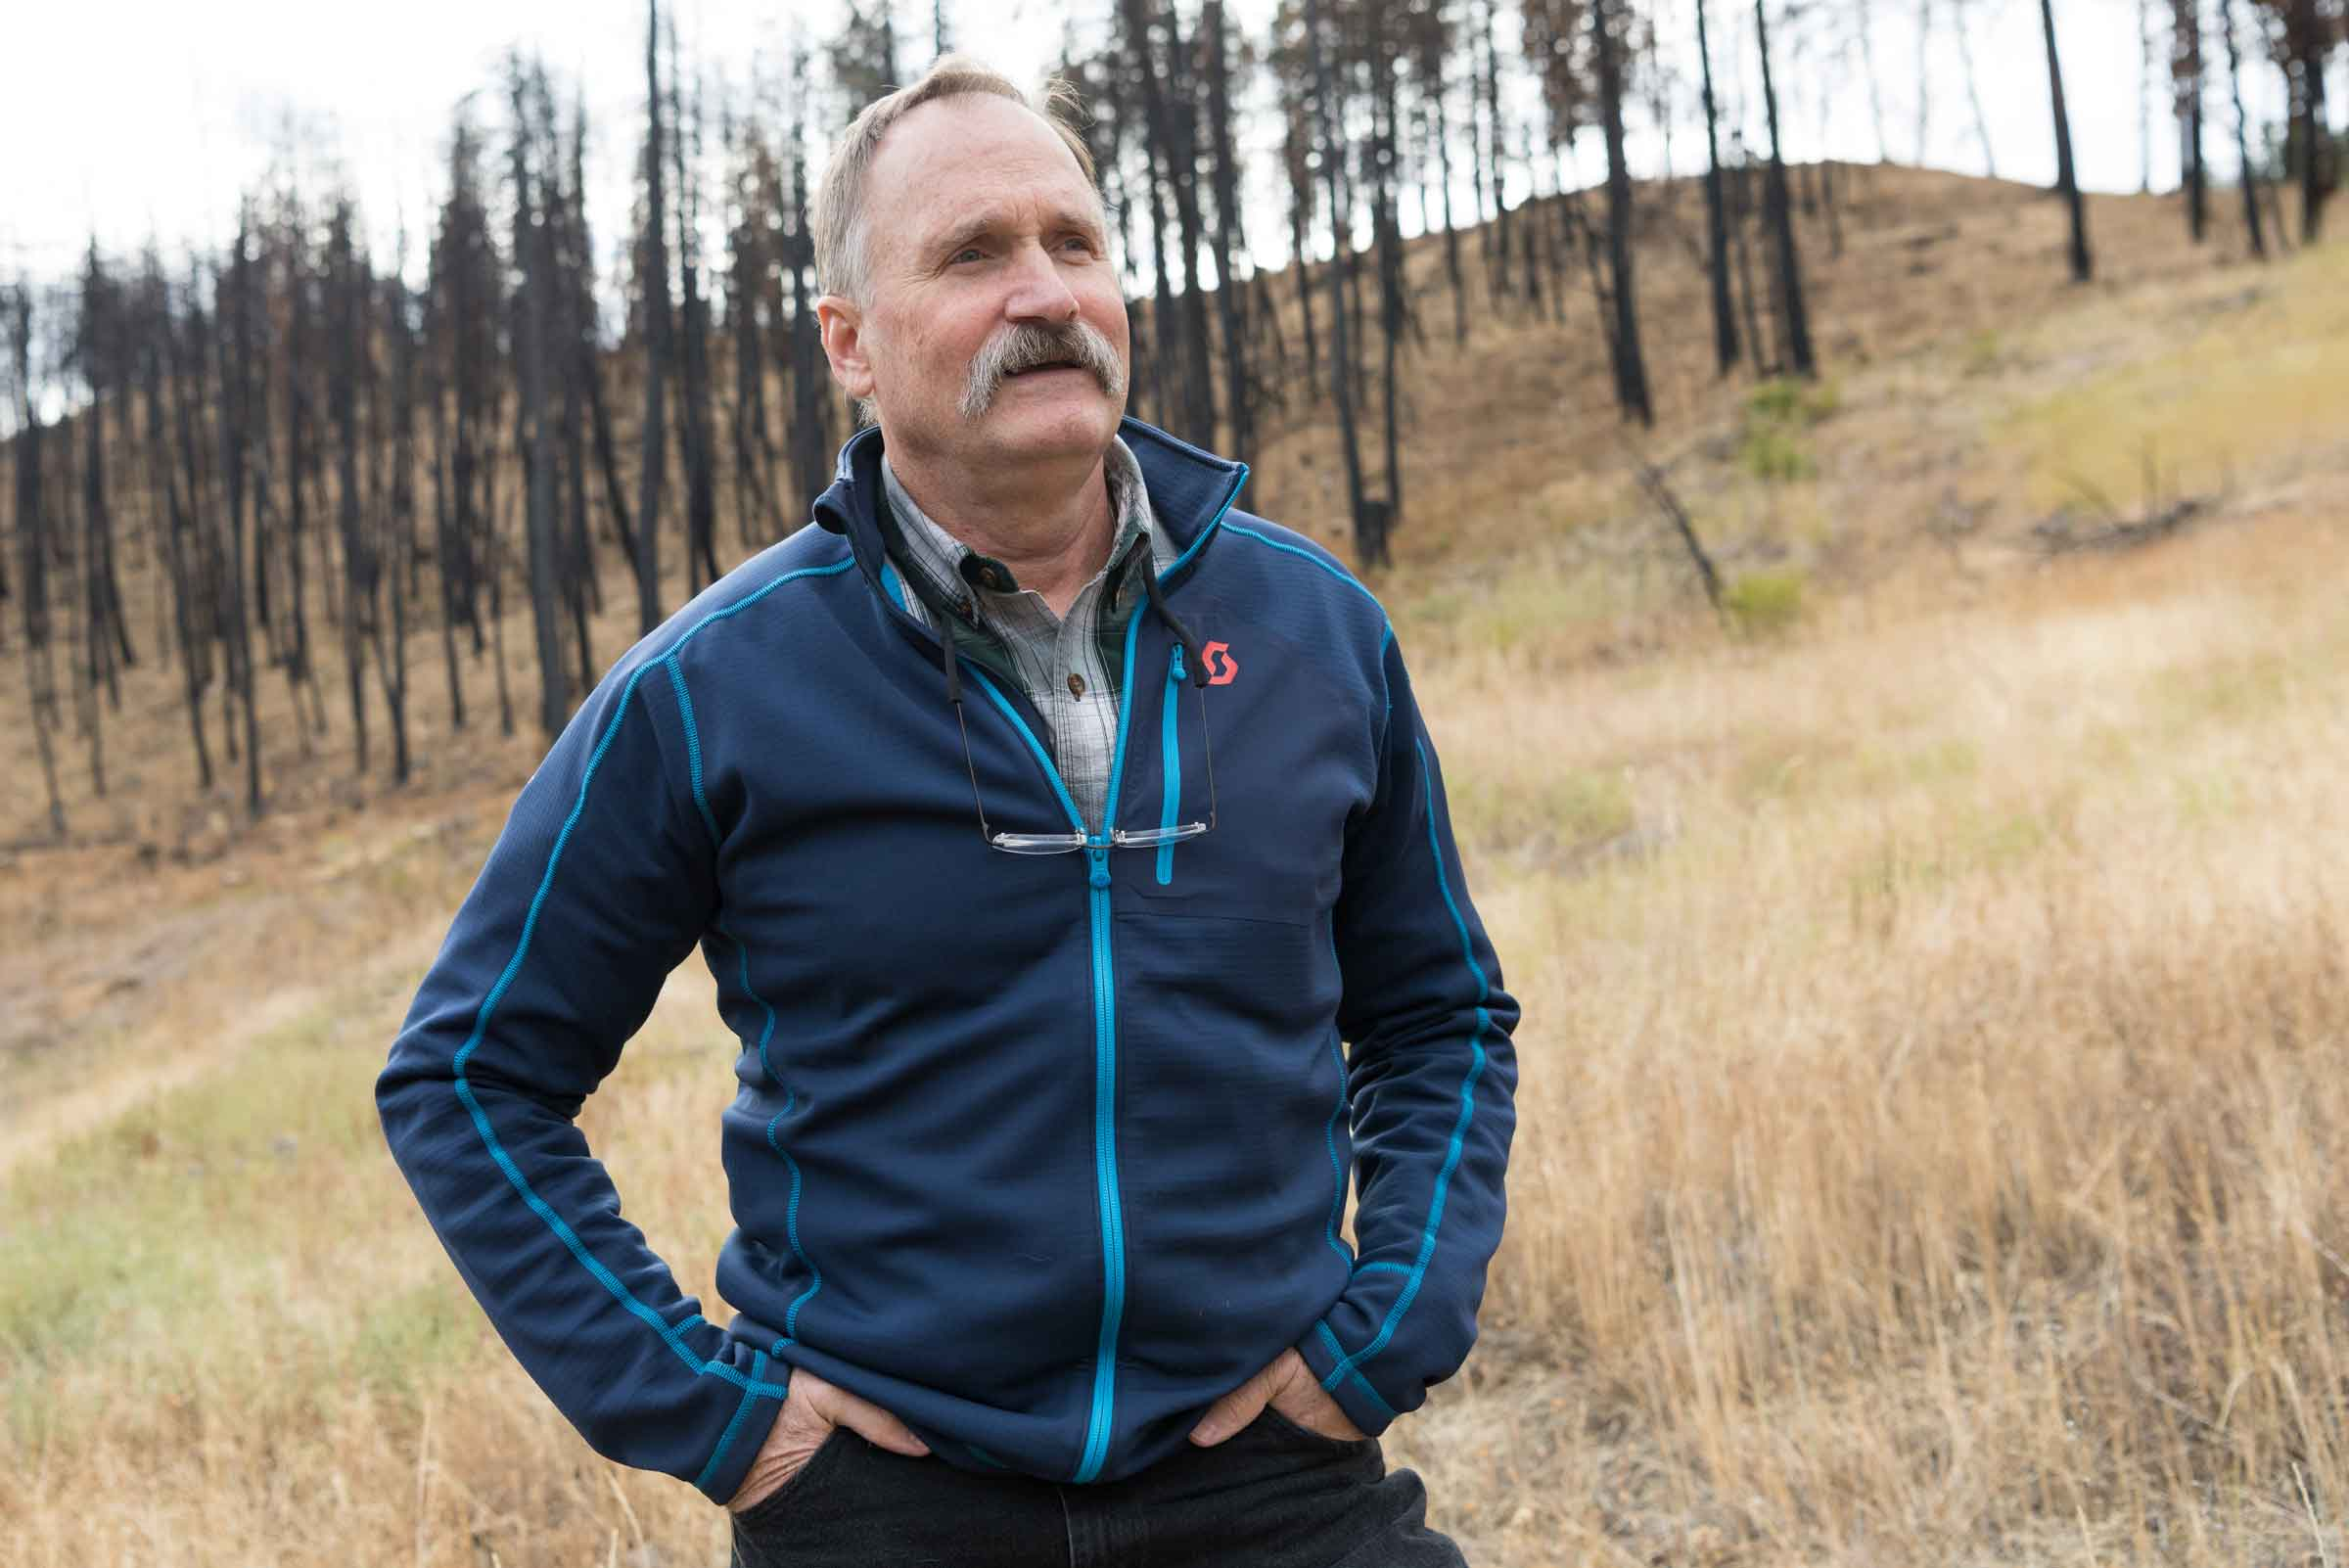 "Paul Hessburg ponders solutions to the megafire epidemic as he stands on land burned by the 2015 Canyon Creek Complex megafire south of John Day. ""Burn under the right conditions is a big core of the answer,"" he says. ""We're not going to [mechanically] thin our way out of this problem. There isn't enough time. It's changing the landscape too fast."" (Adam Bacher)"